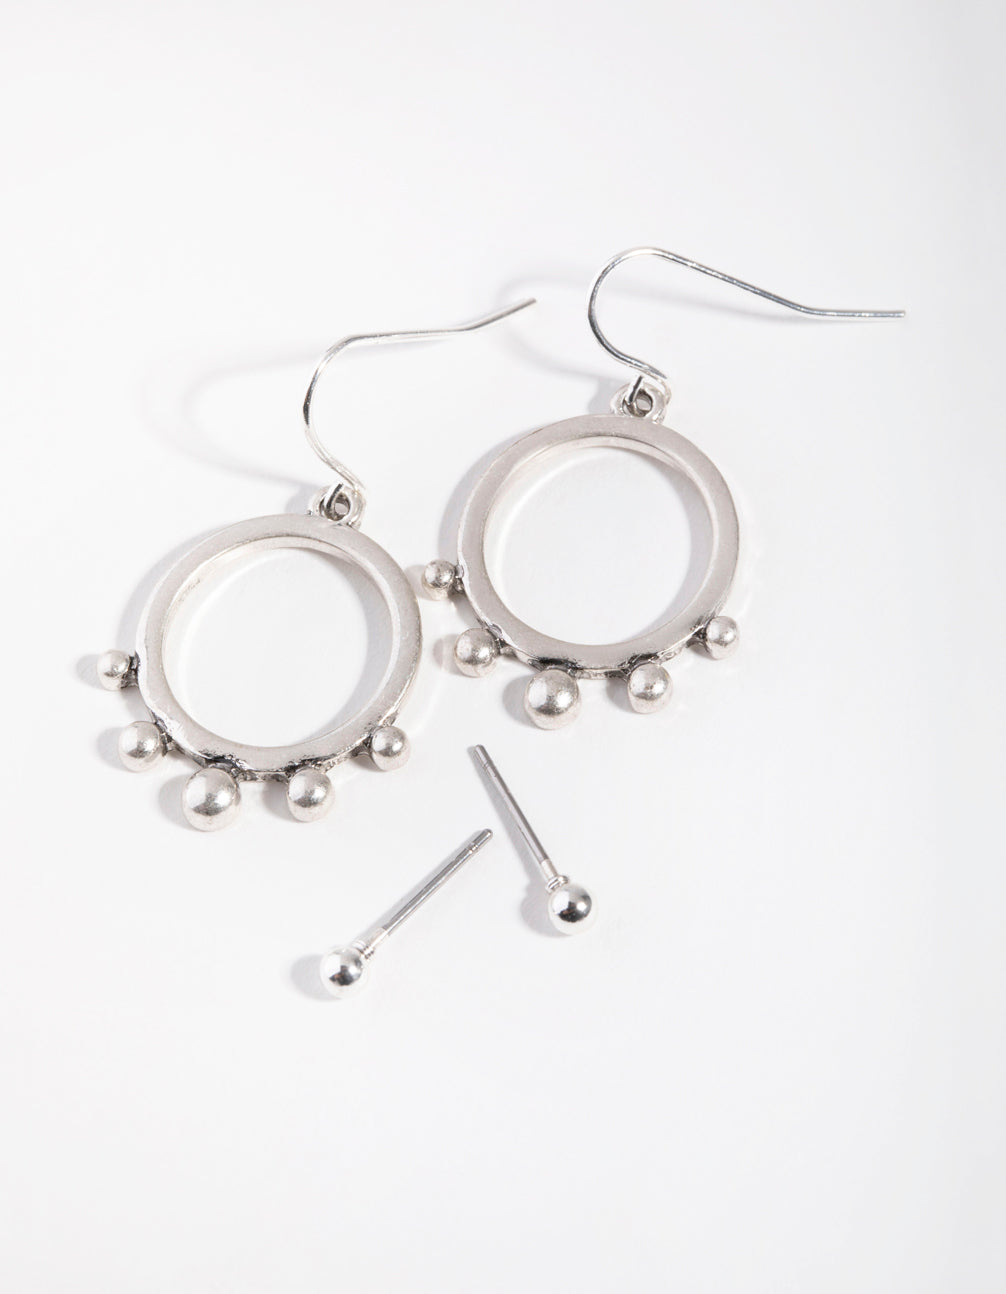 Antique Silver Open Circle in Ball 2-Pack Earring